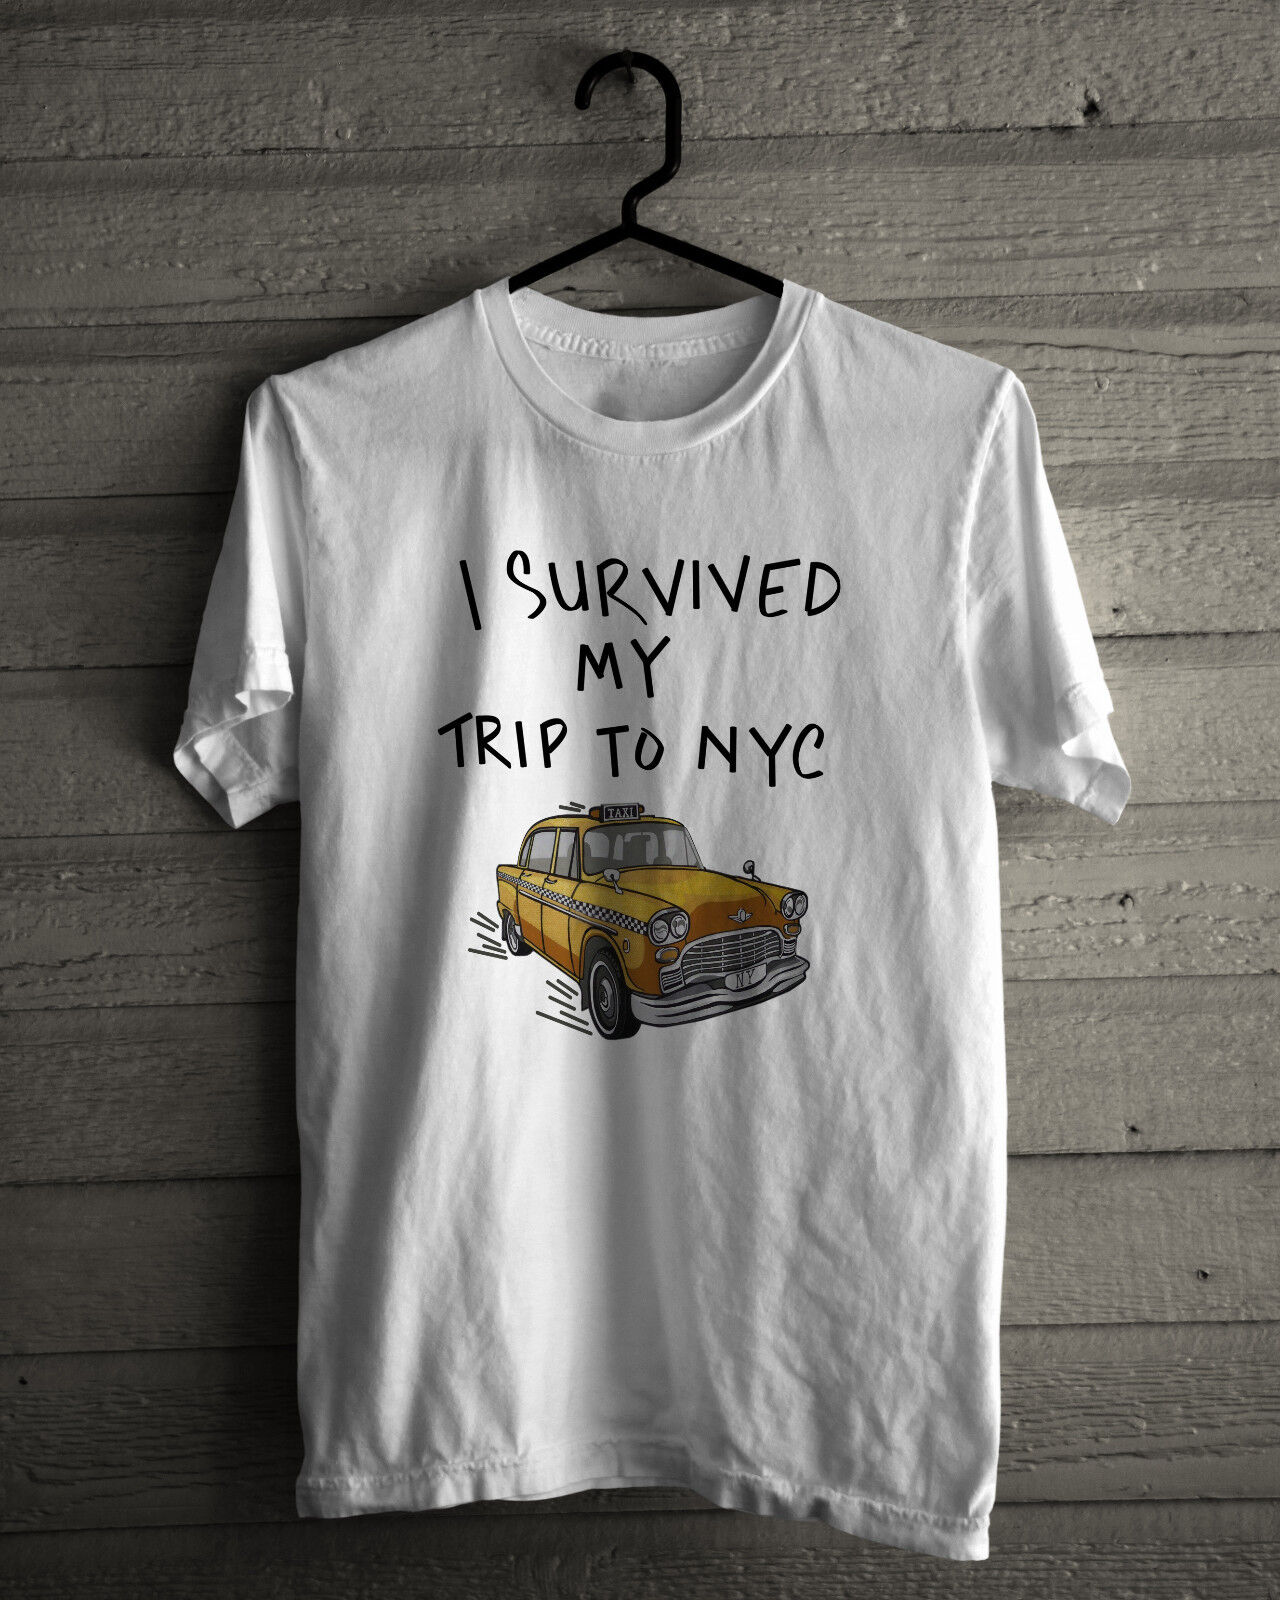 I Survived My Trip To Nyc T-Shirt. Inspired from movie Spiderman Homecoming 79aee27f611